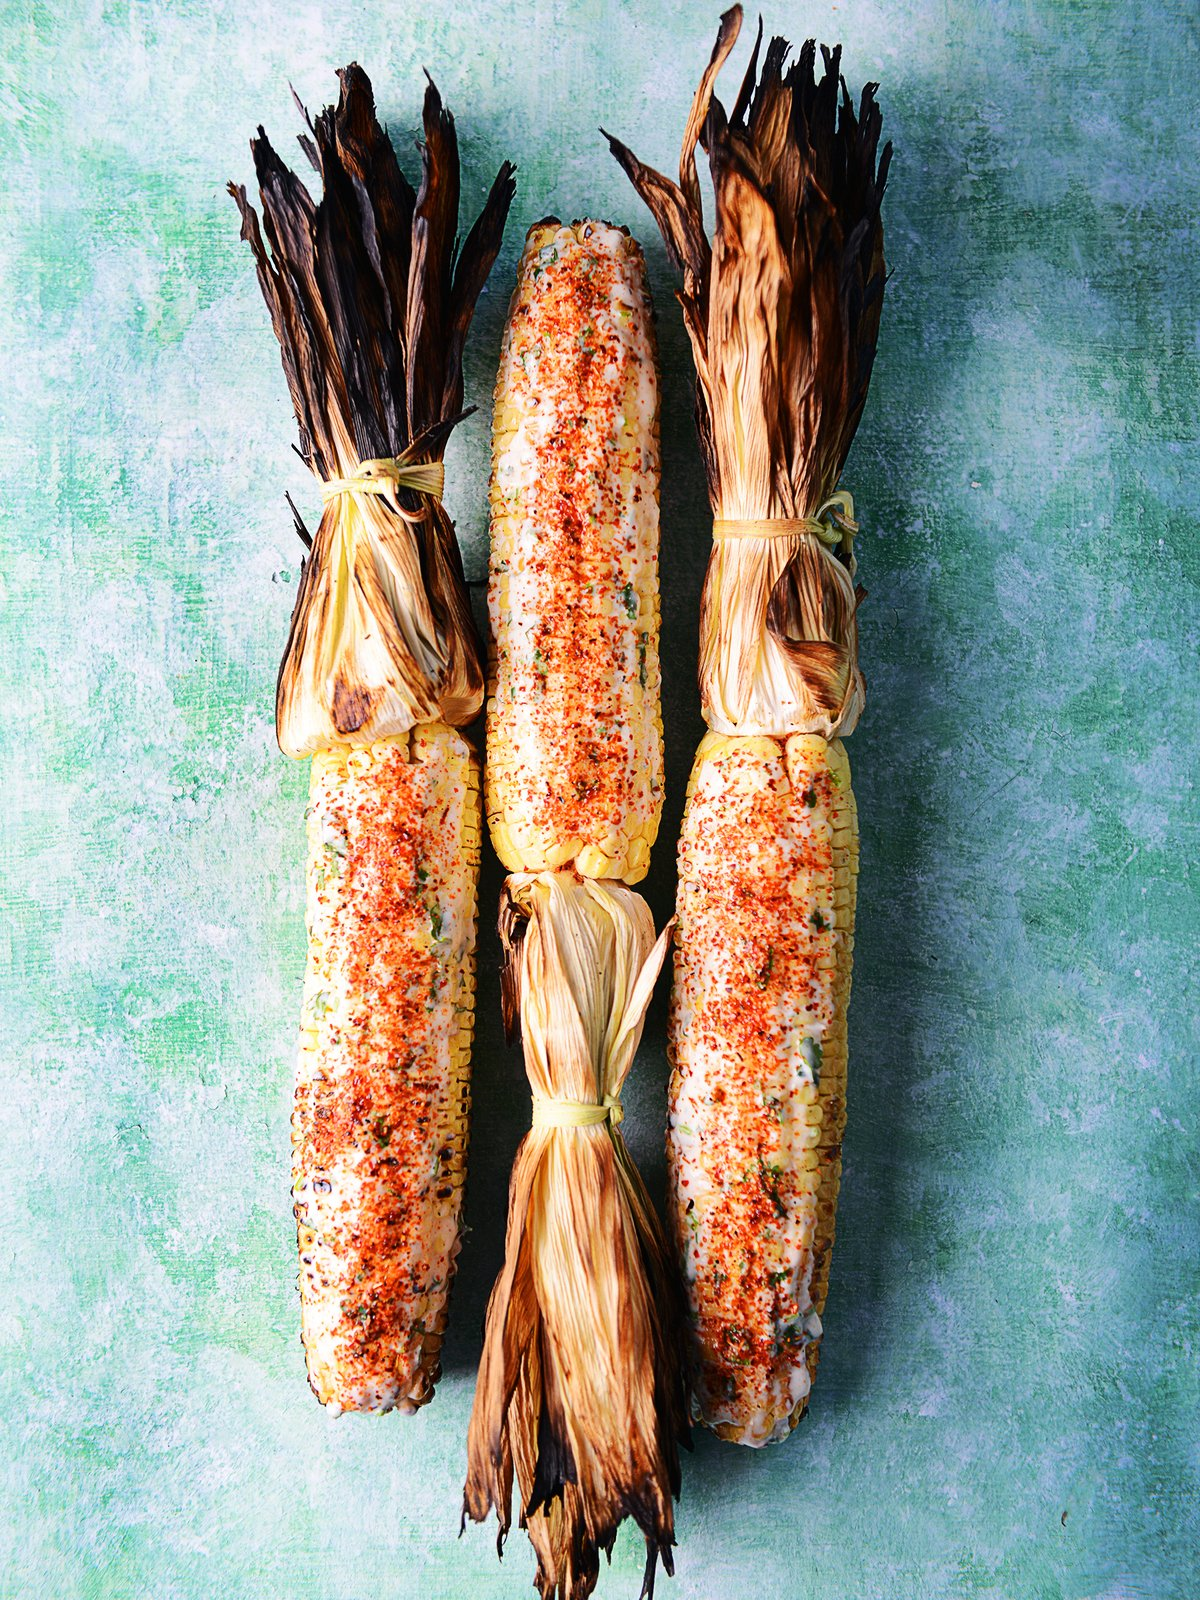 Three grilled corns on the cob placed on a green background